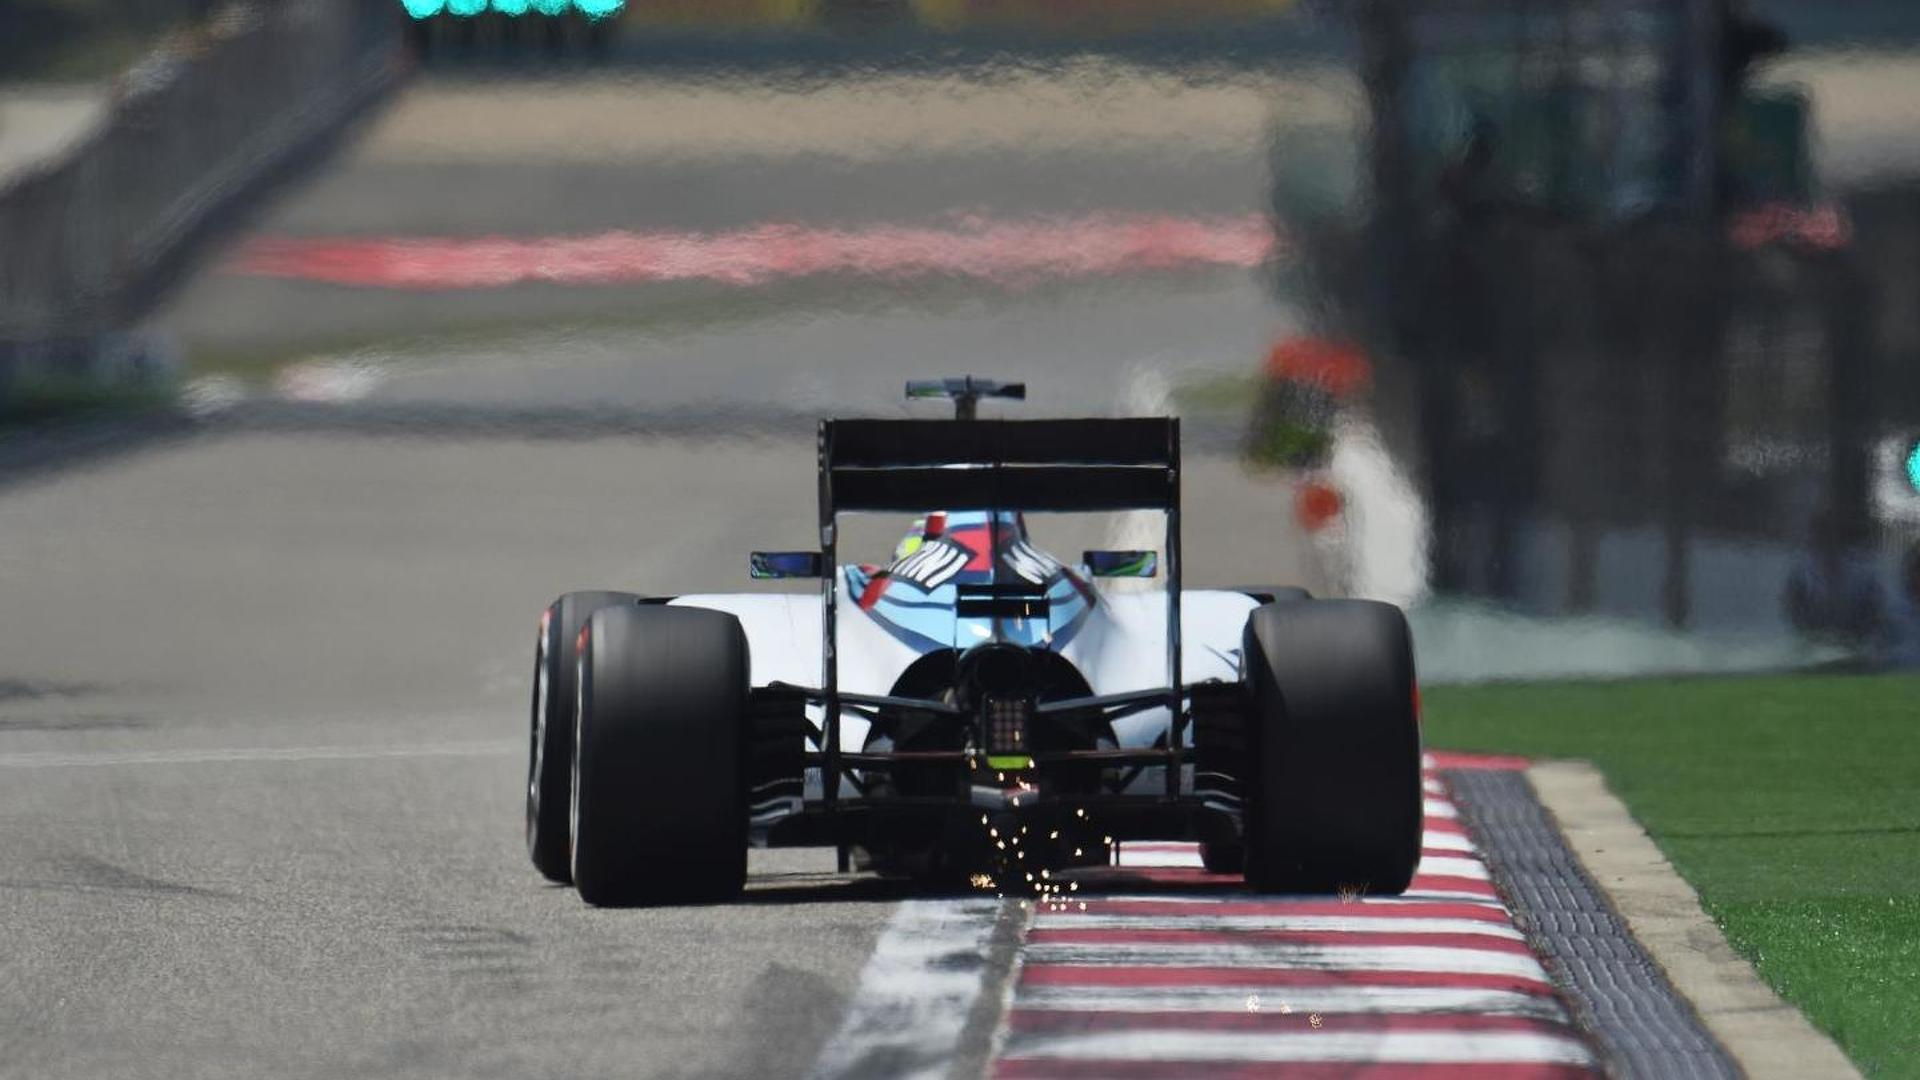 F1 sparks causing issues in Shanghai